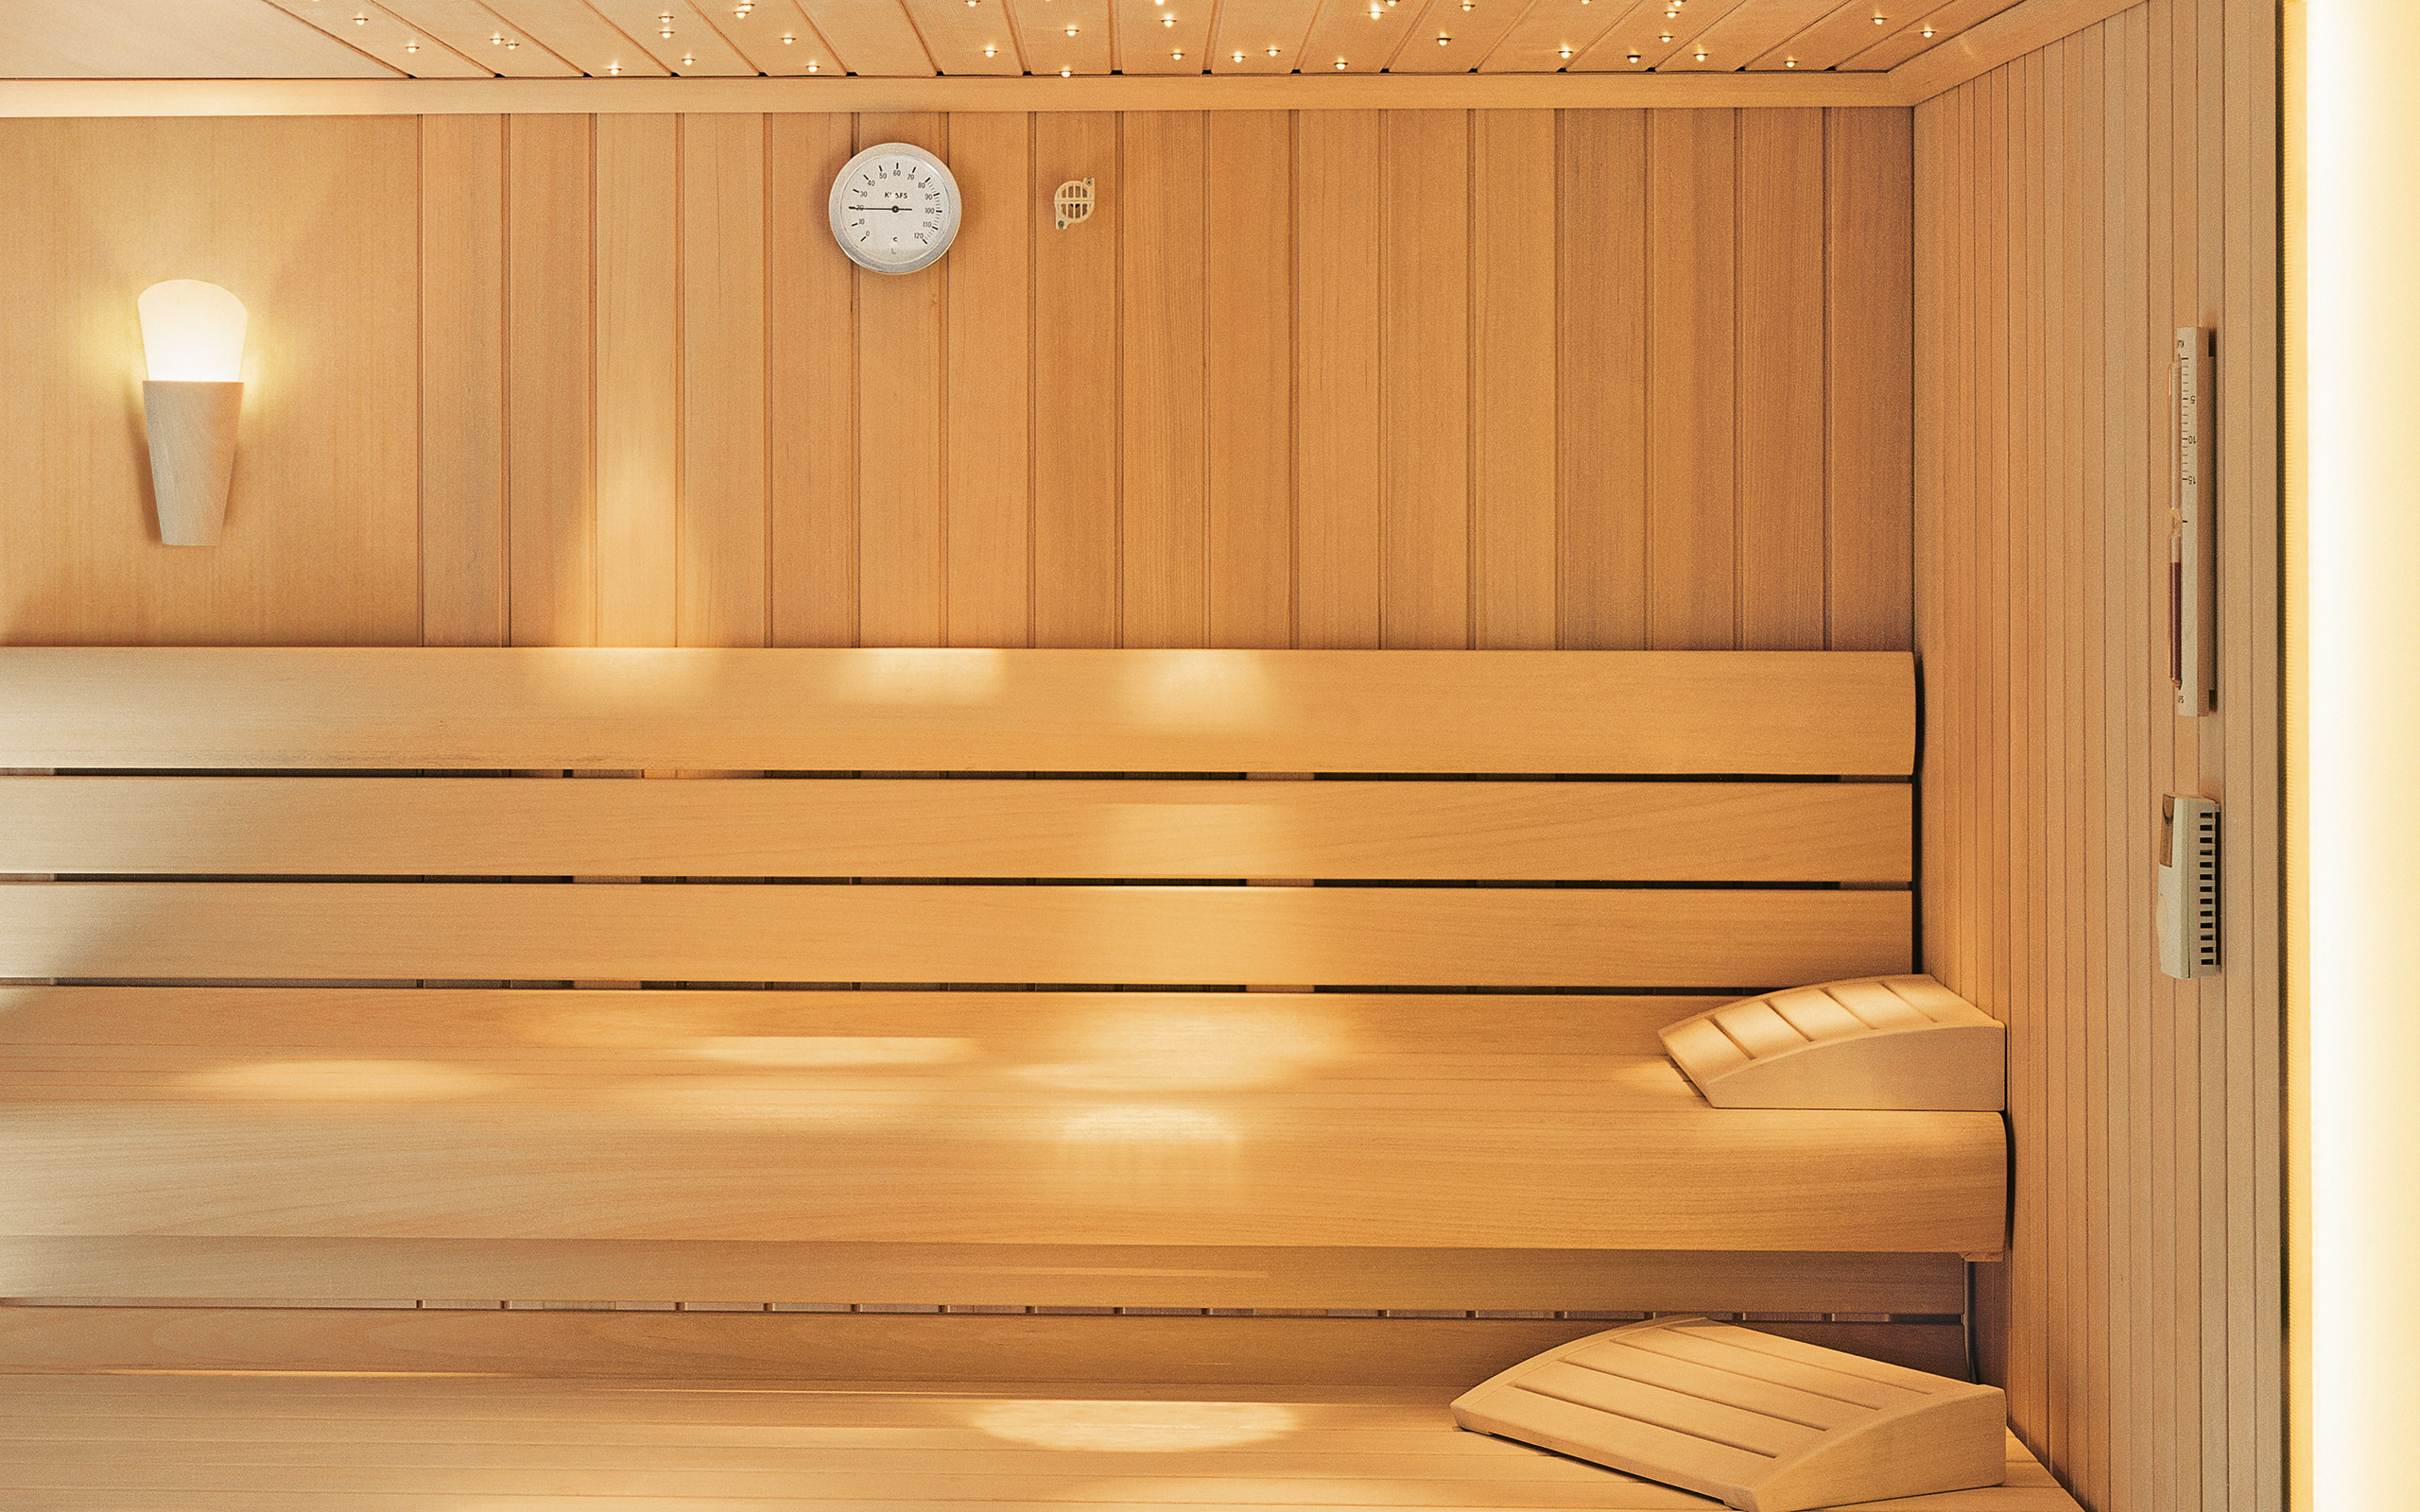 proteo design sauna the vibrant and open sauna. Black Bedroom Furniture Sets. Home Design Ideas